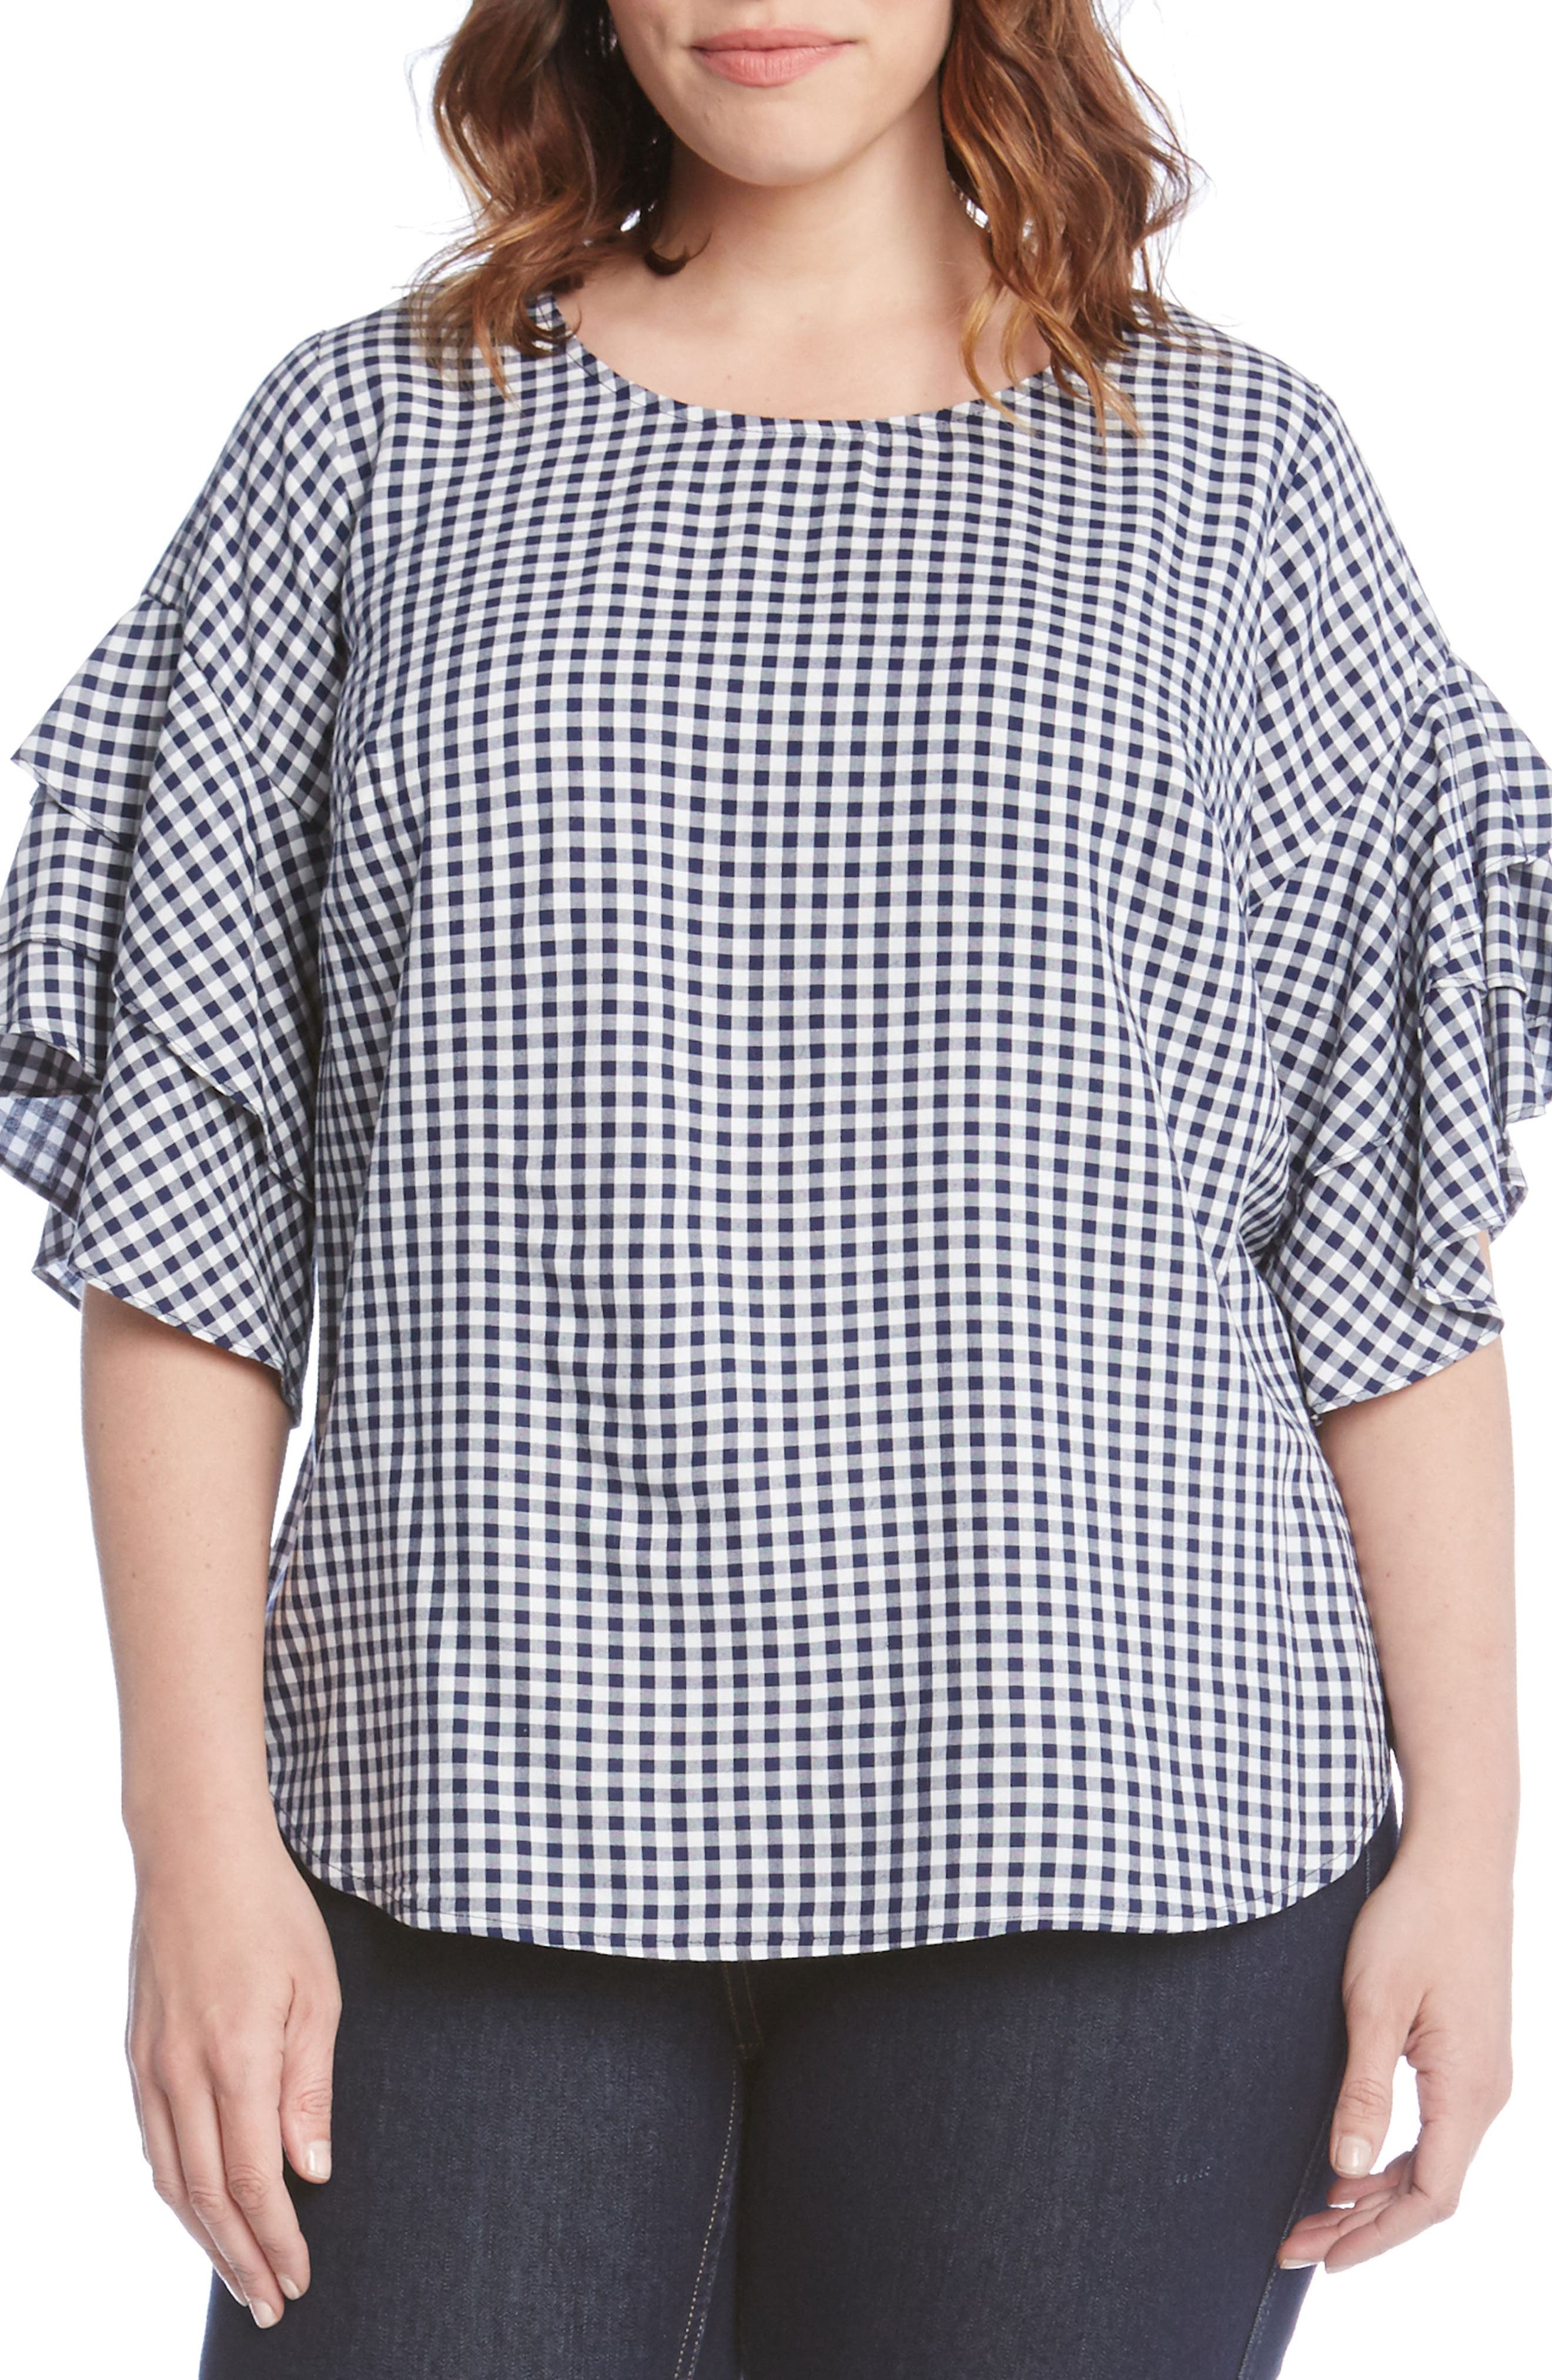 Ruffle Sleeve Gingham Blouse,                         Main,                         color, Check